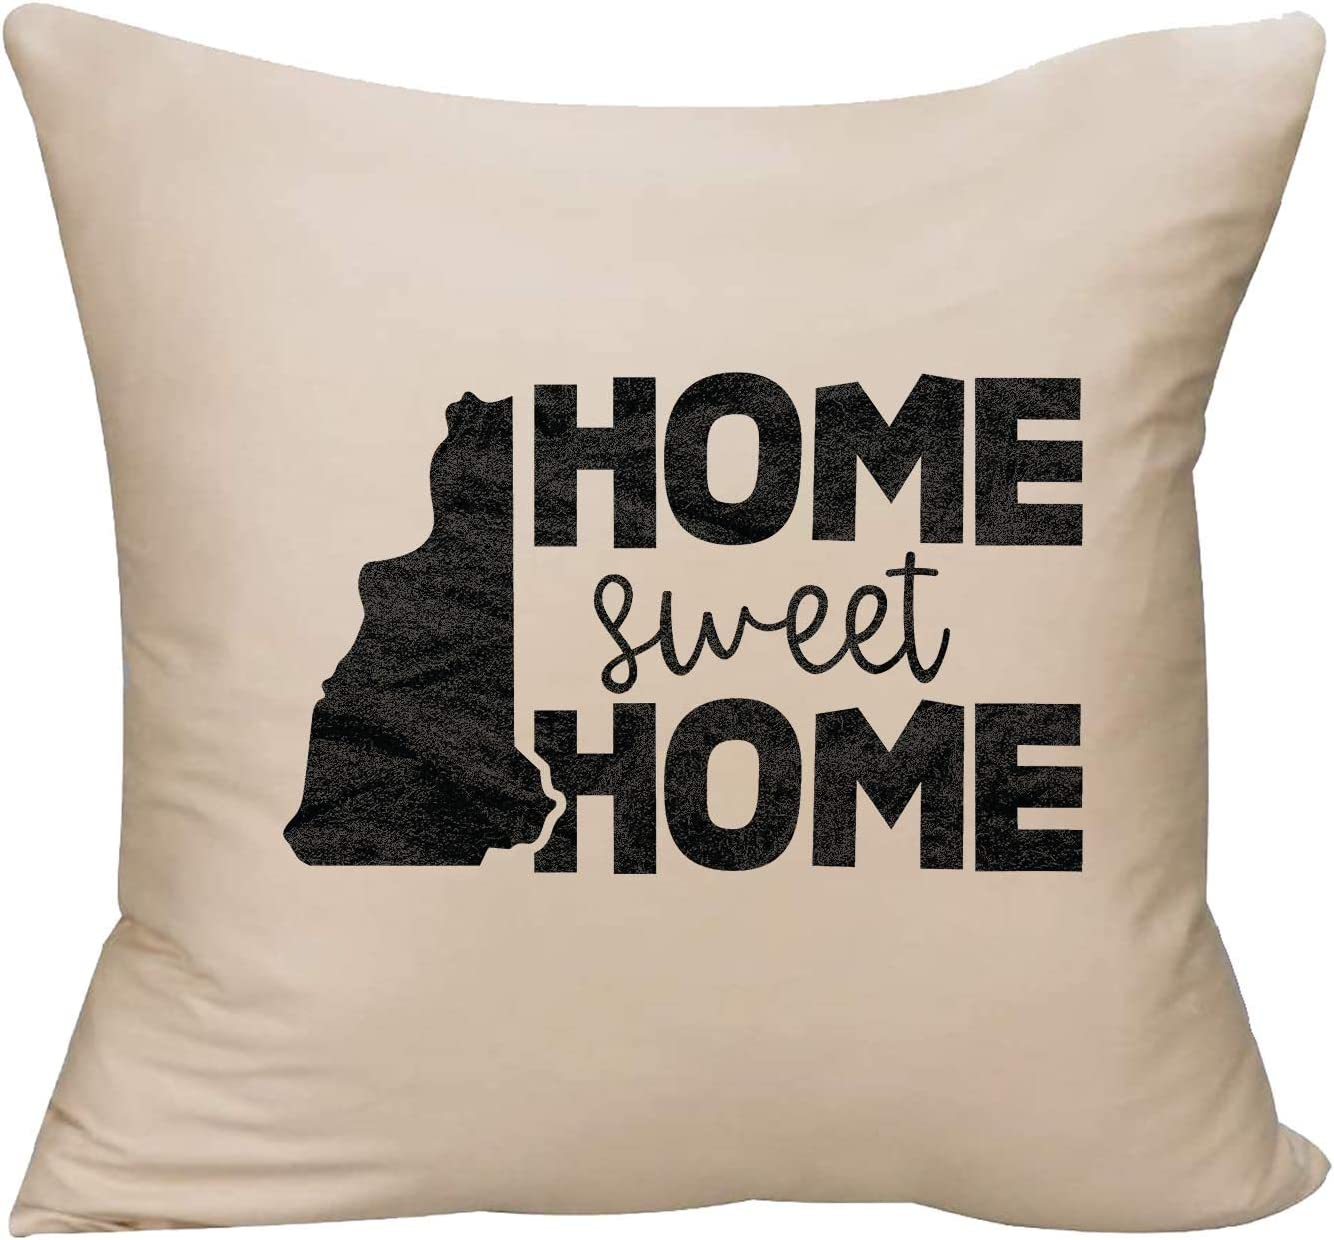 EVH Home Sweet Home New Hampshire State Native Hometown Love Decorative Throw Pillow Cover 18 x 18 Beige Funny Gift